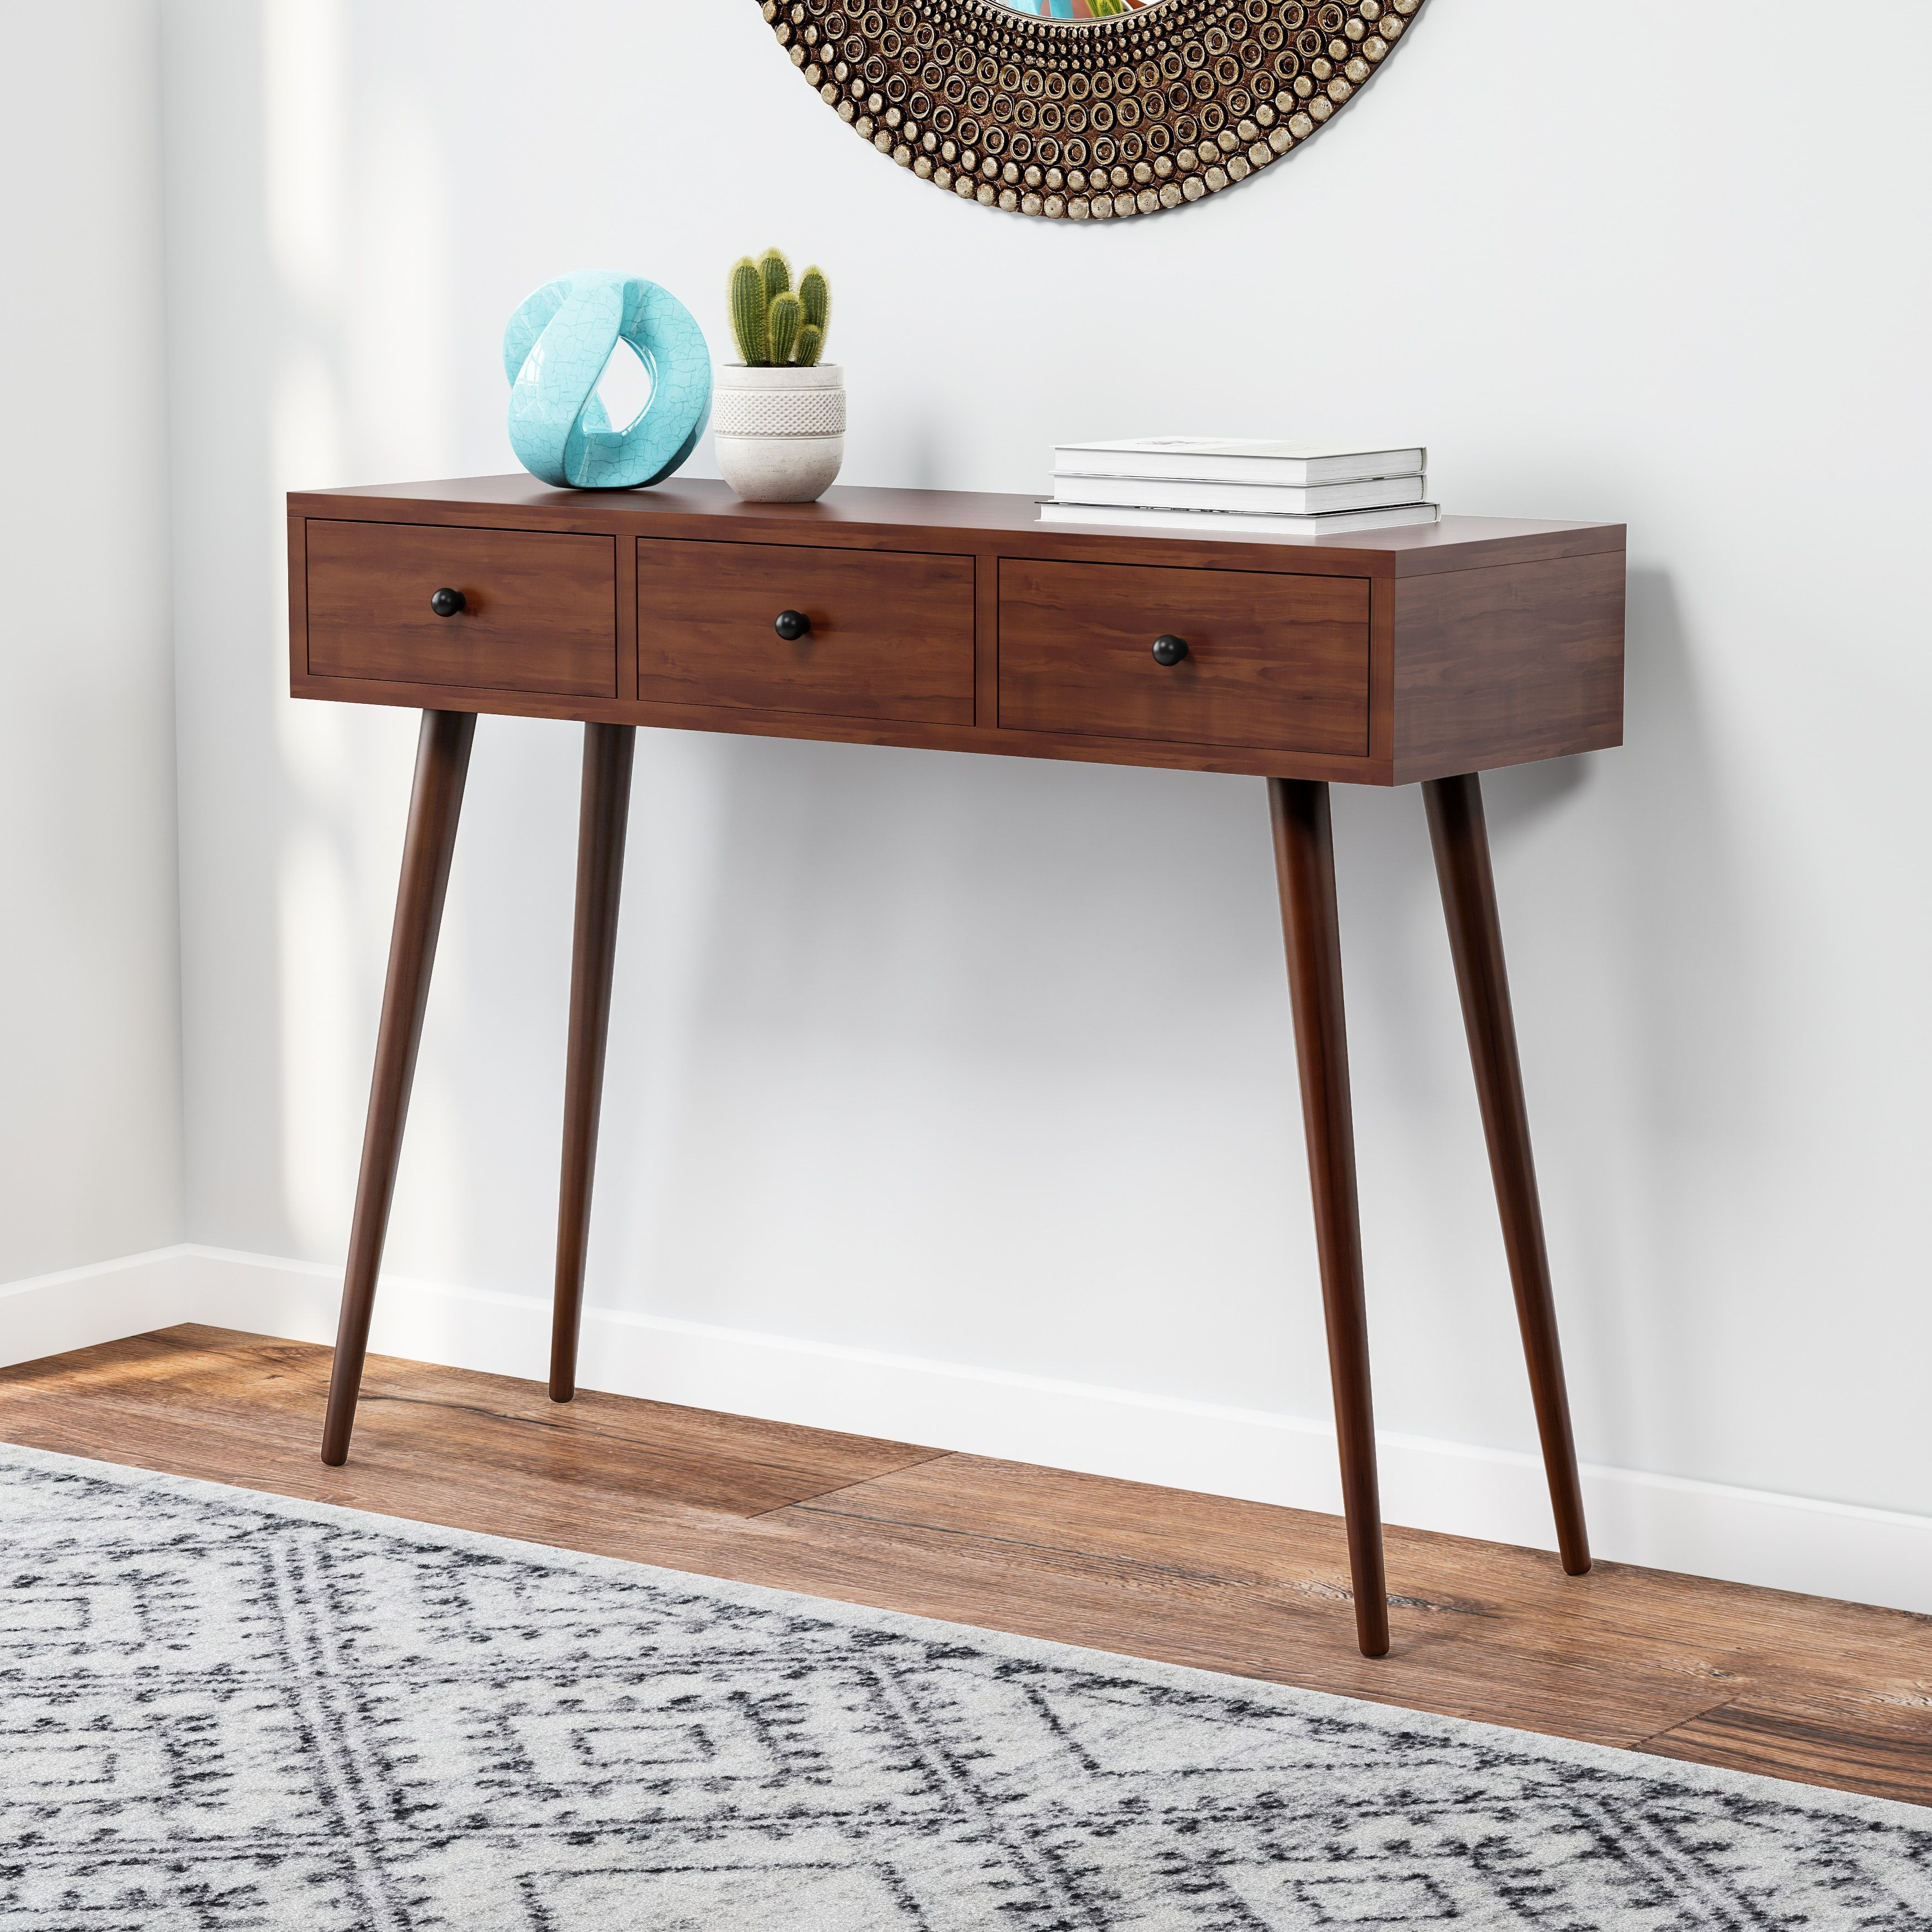 Get Inspired By These Console Tables For Your Ideal Console Table Find More In Mid Century Modern Console Table Living Room Furniture Sale Mid Century Console